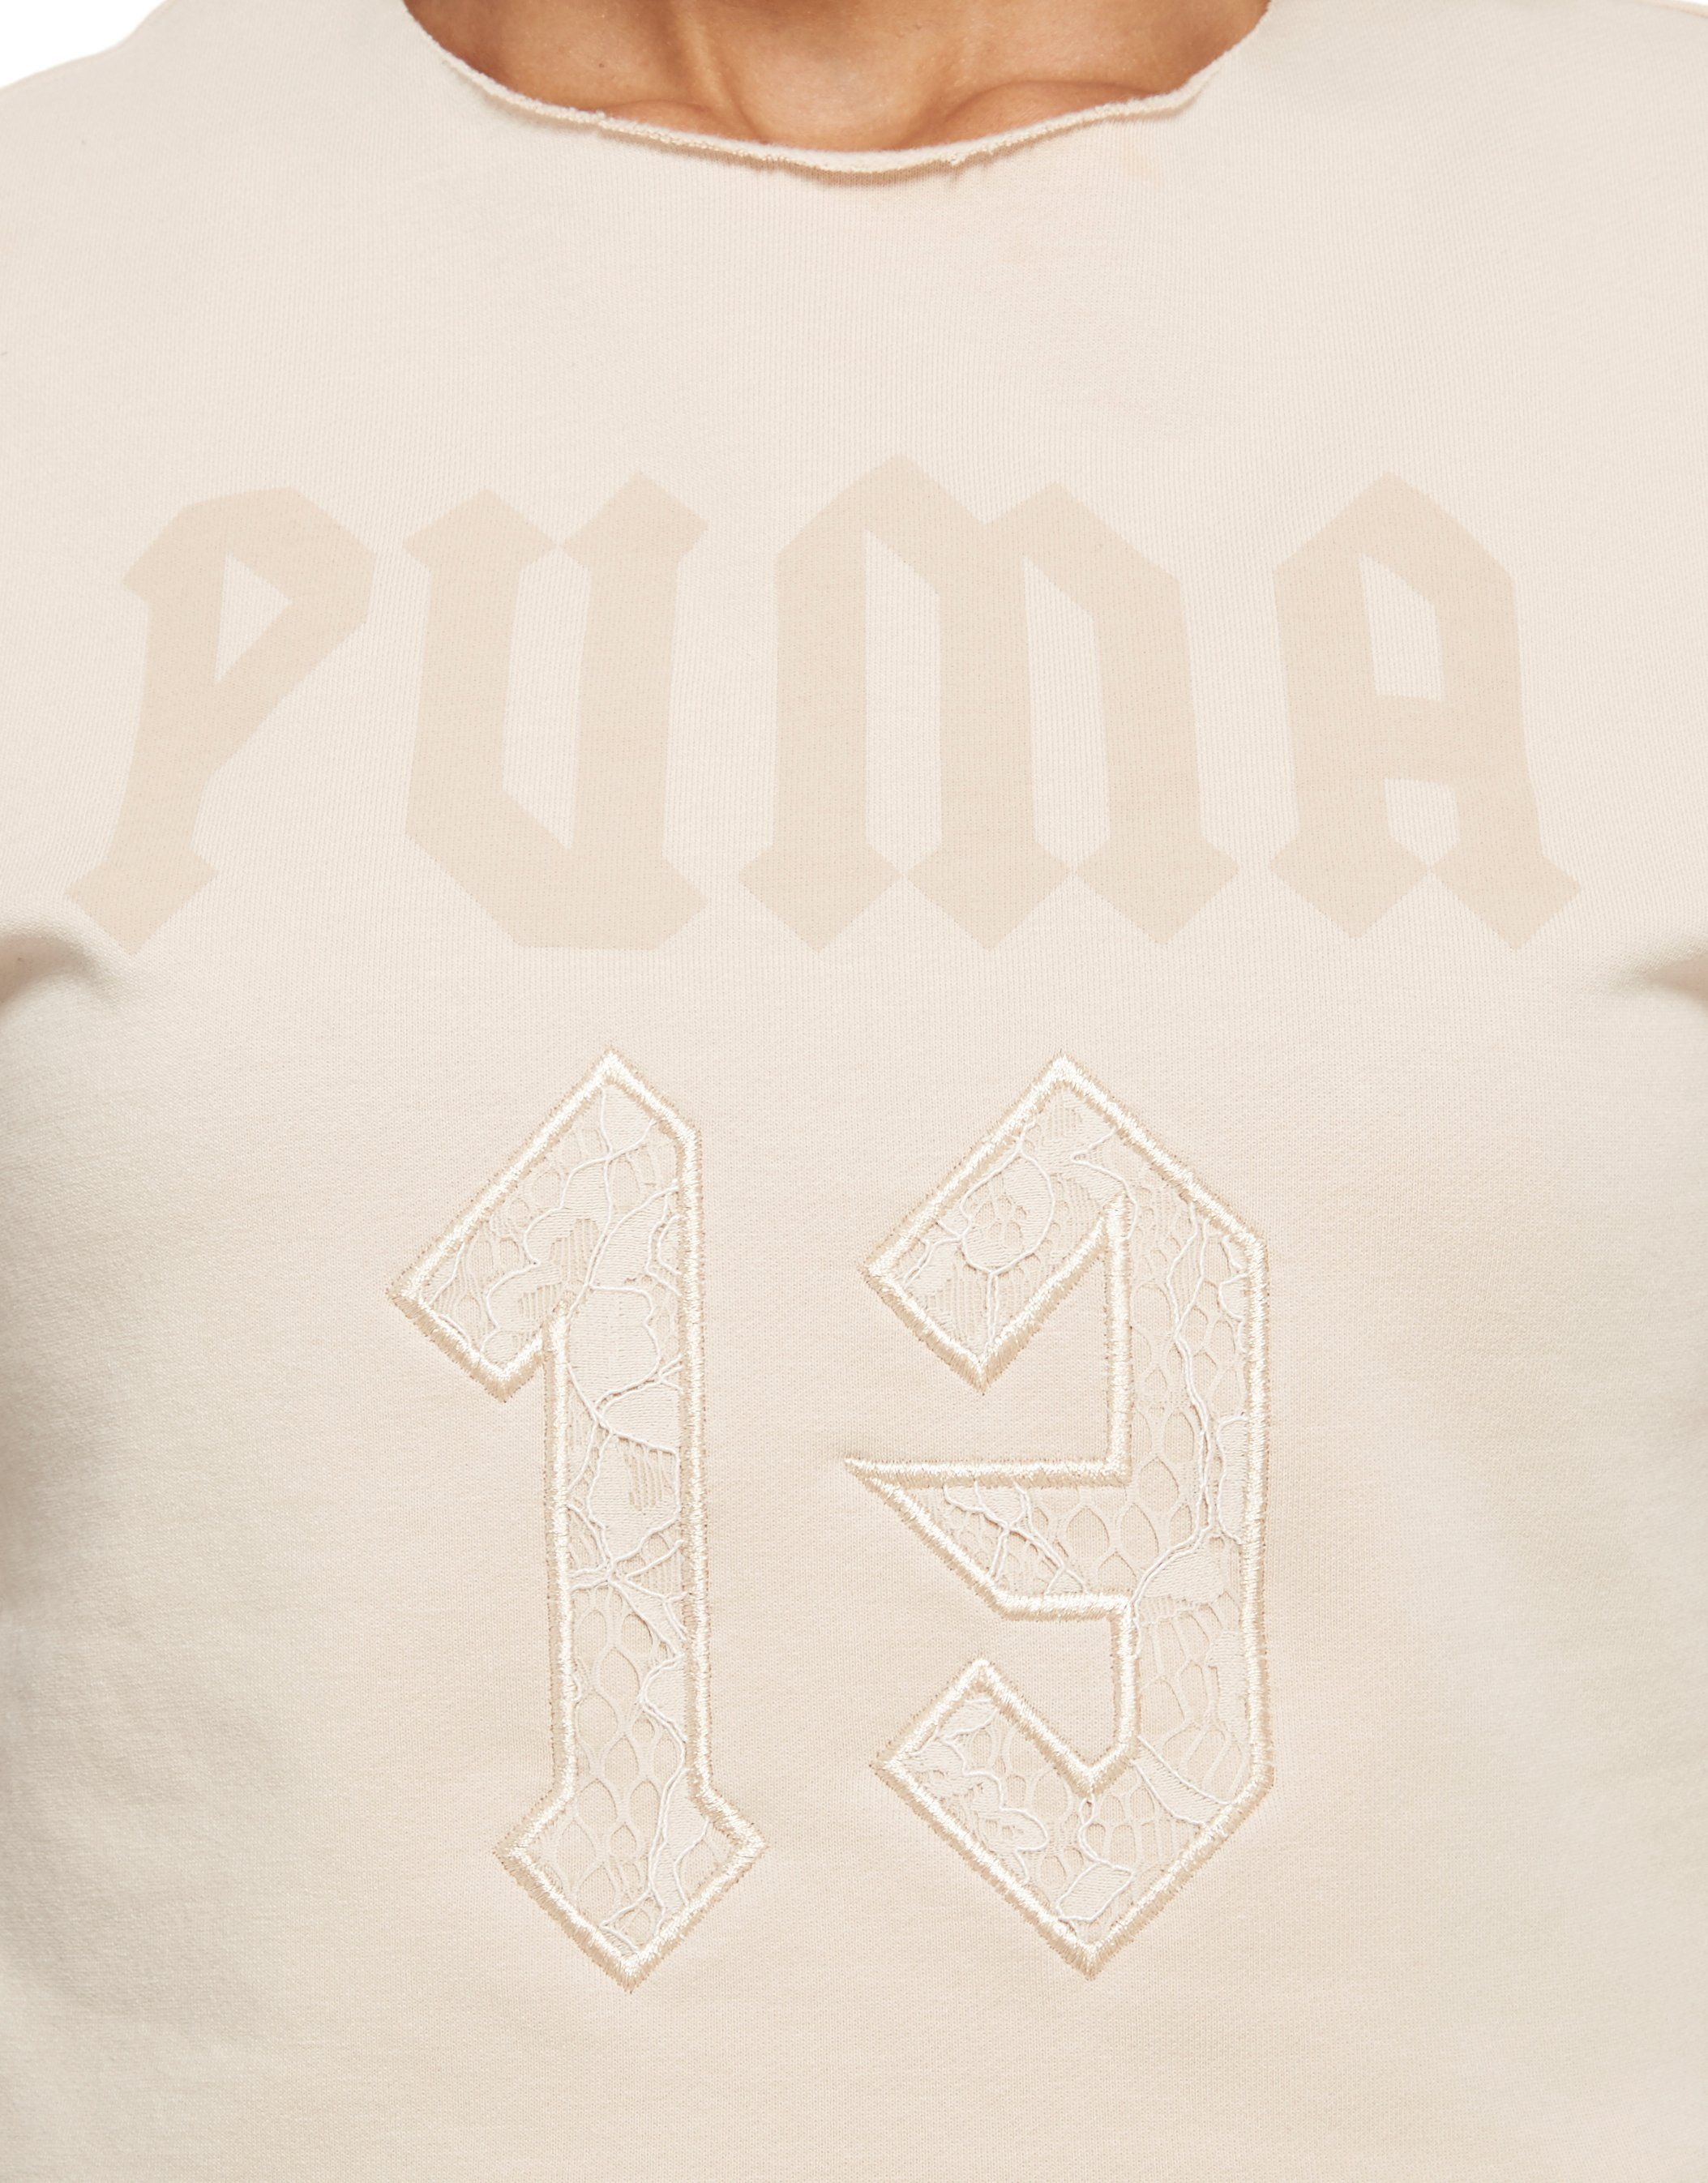 PUMA Fenty Crop Top